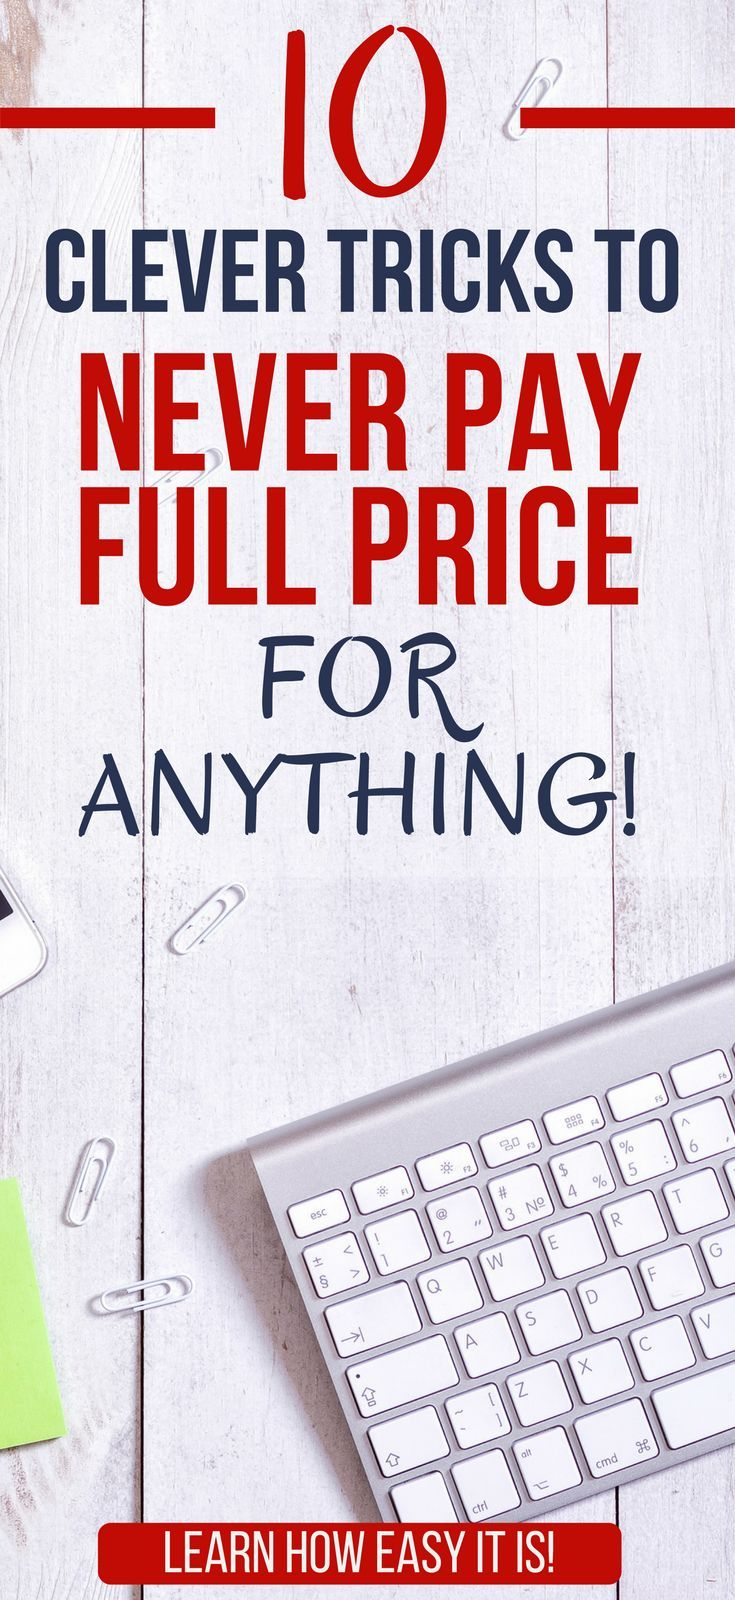 10 Clever Tricks to Never Pay Full Price for Anything 10 Clever Tricks to Never Pay Full Price for Anything  Discover 10 clever tricks, tips, and hacks for saving money on each and every purchase.  money saving hacks lifehacks | tips for saving money frugal living | ways to save money on bills |